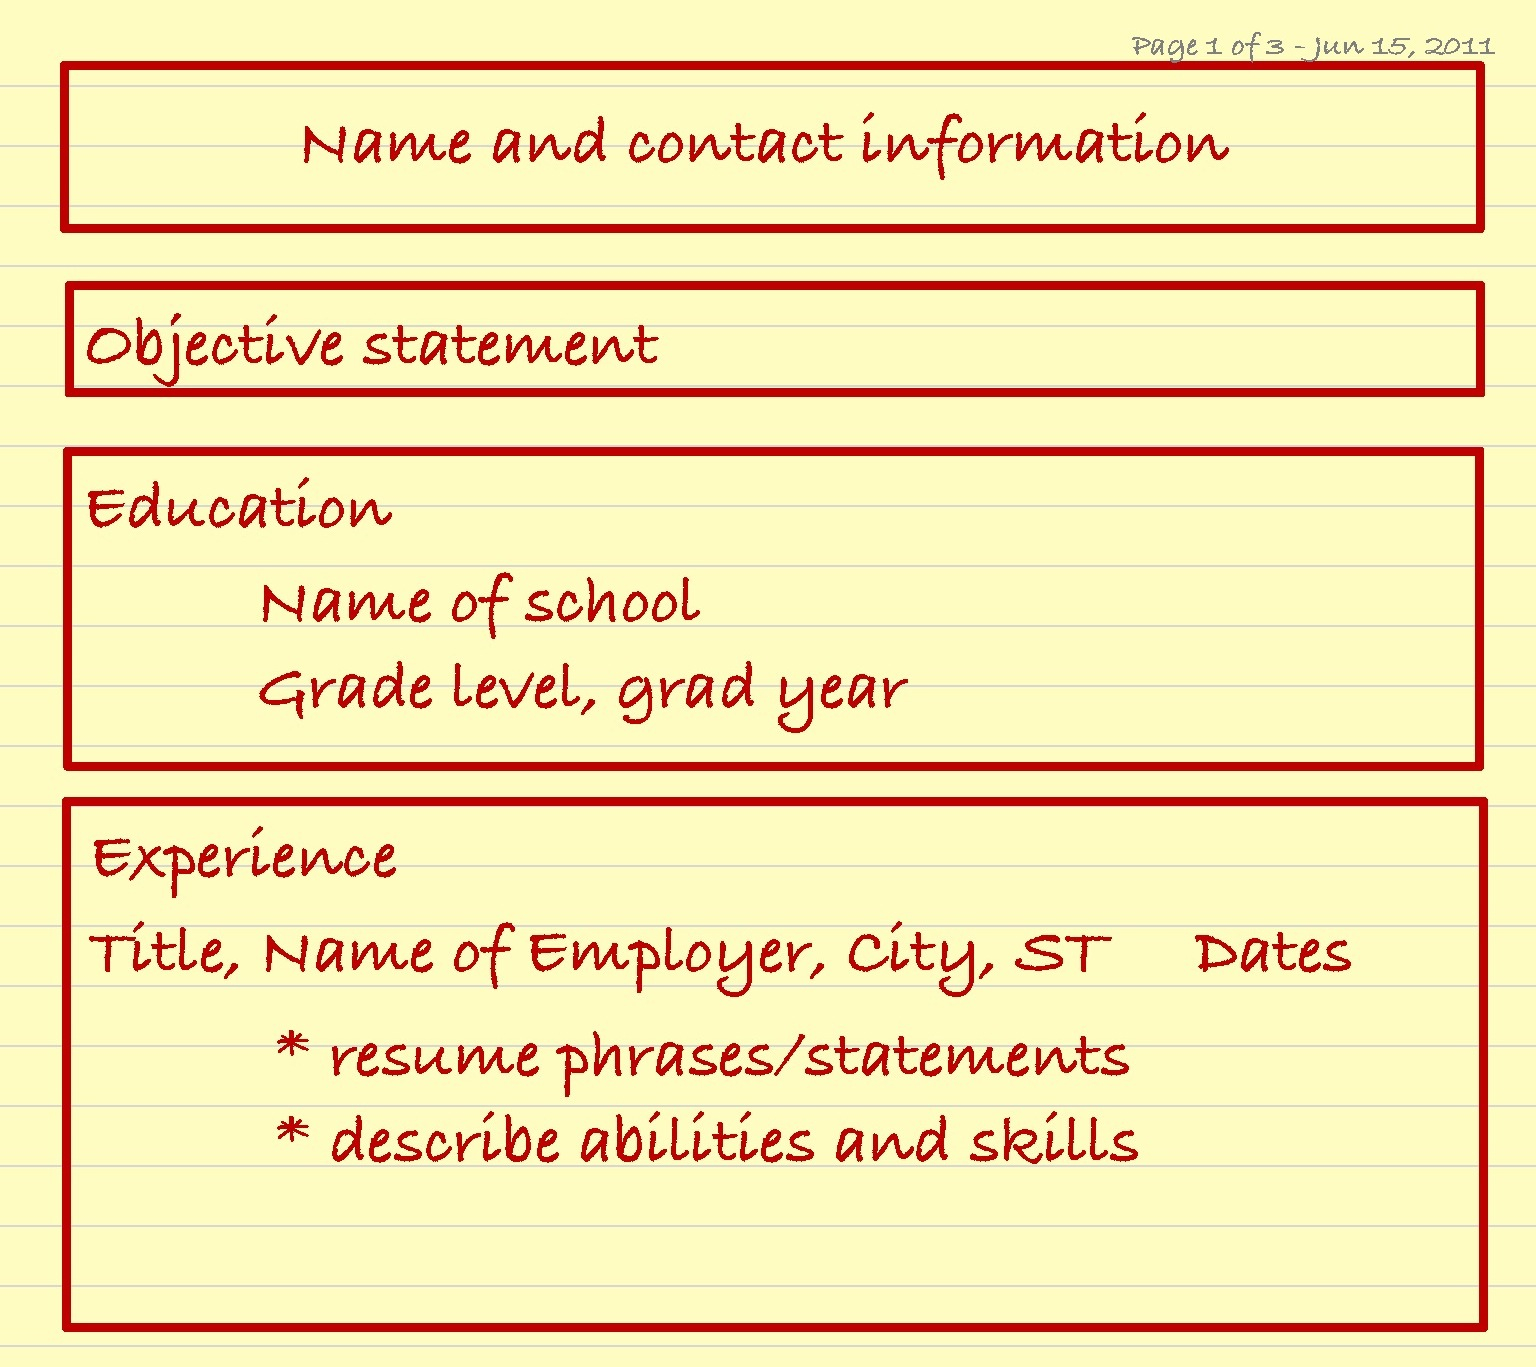 although the chronological resume format